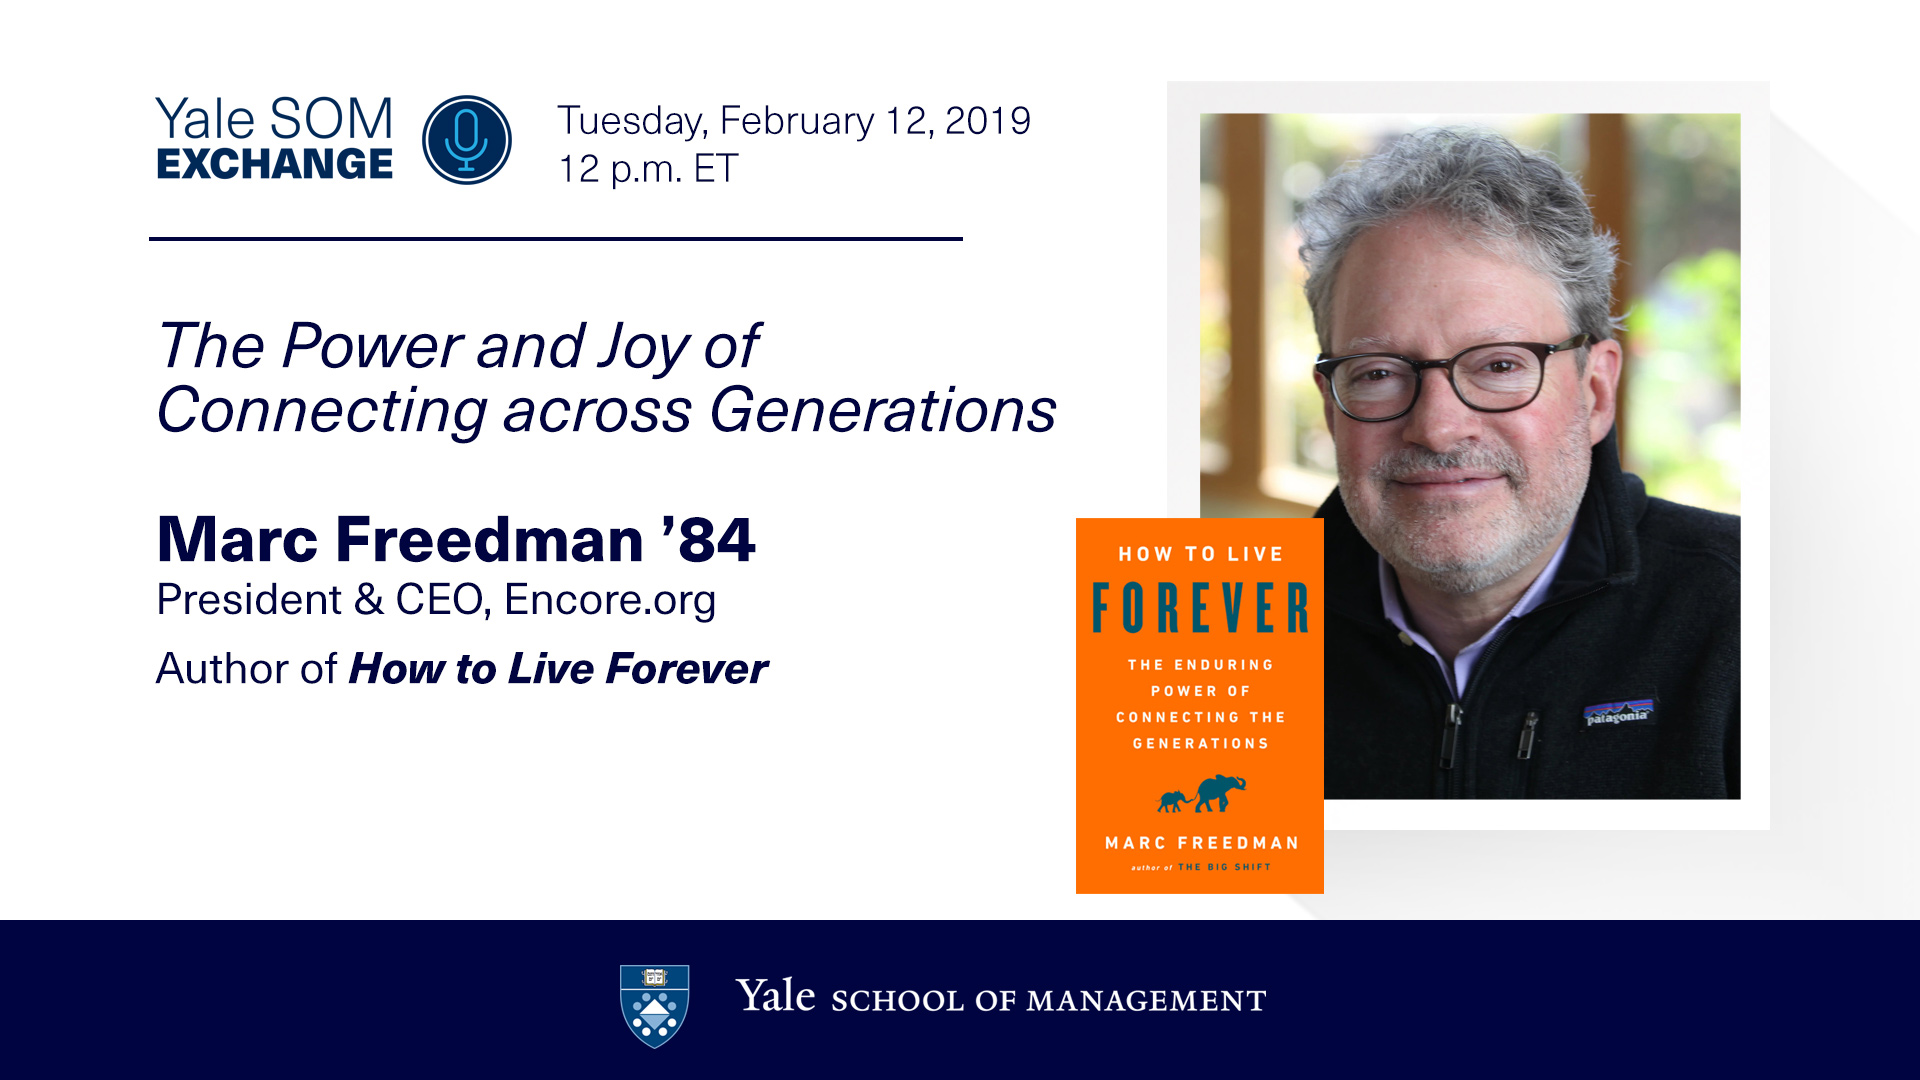 [WEBINAR] The Power and Joy of Connecting across Generations